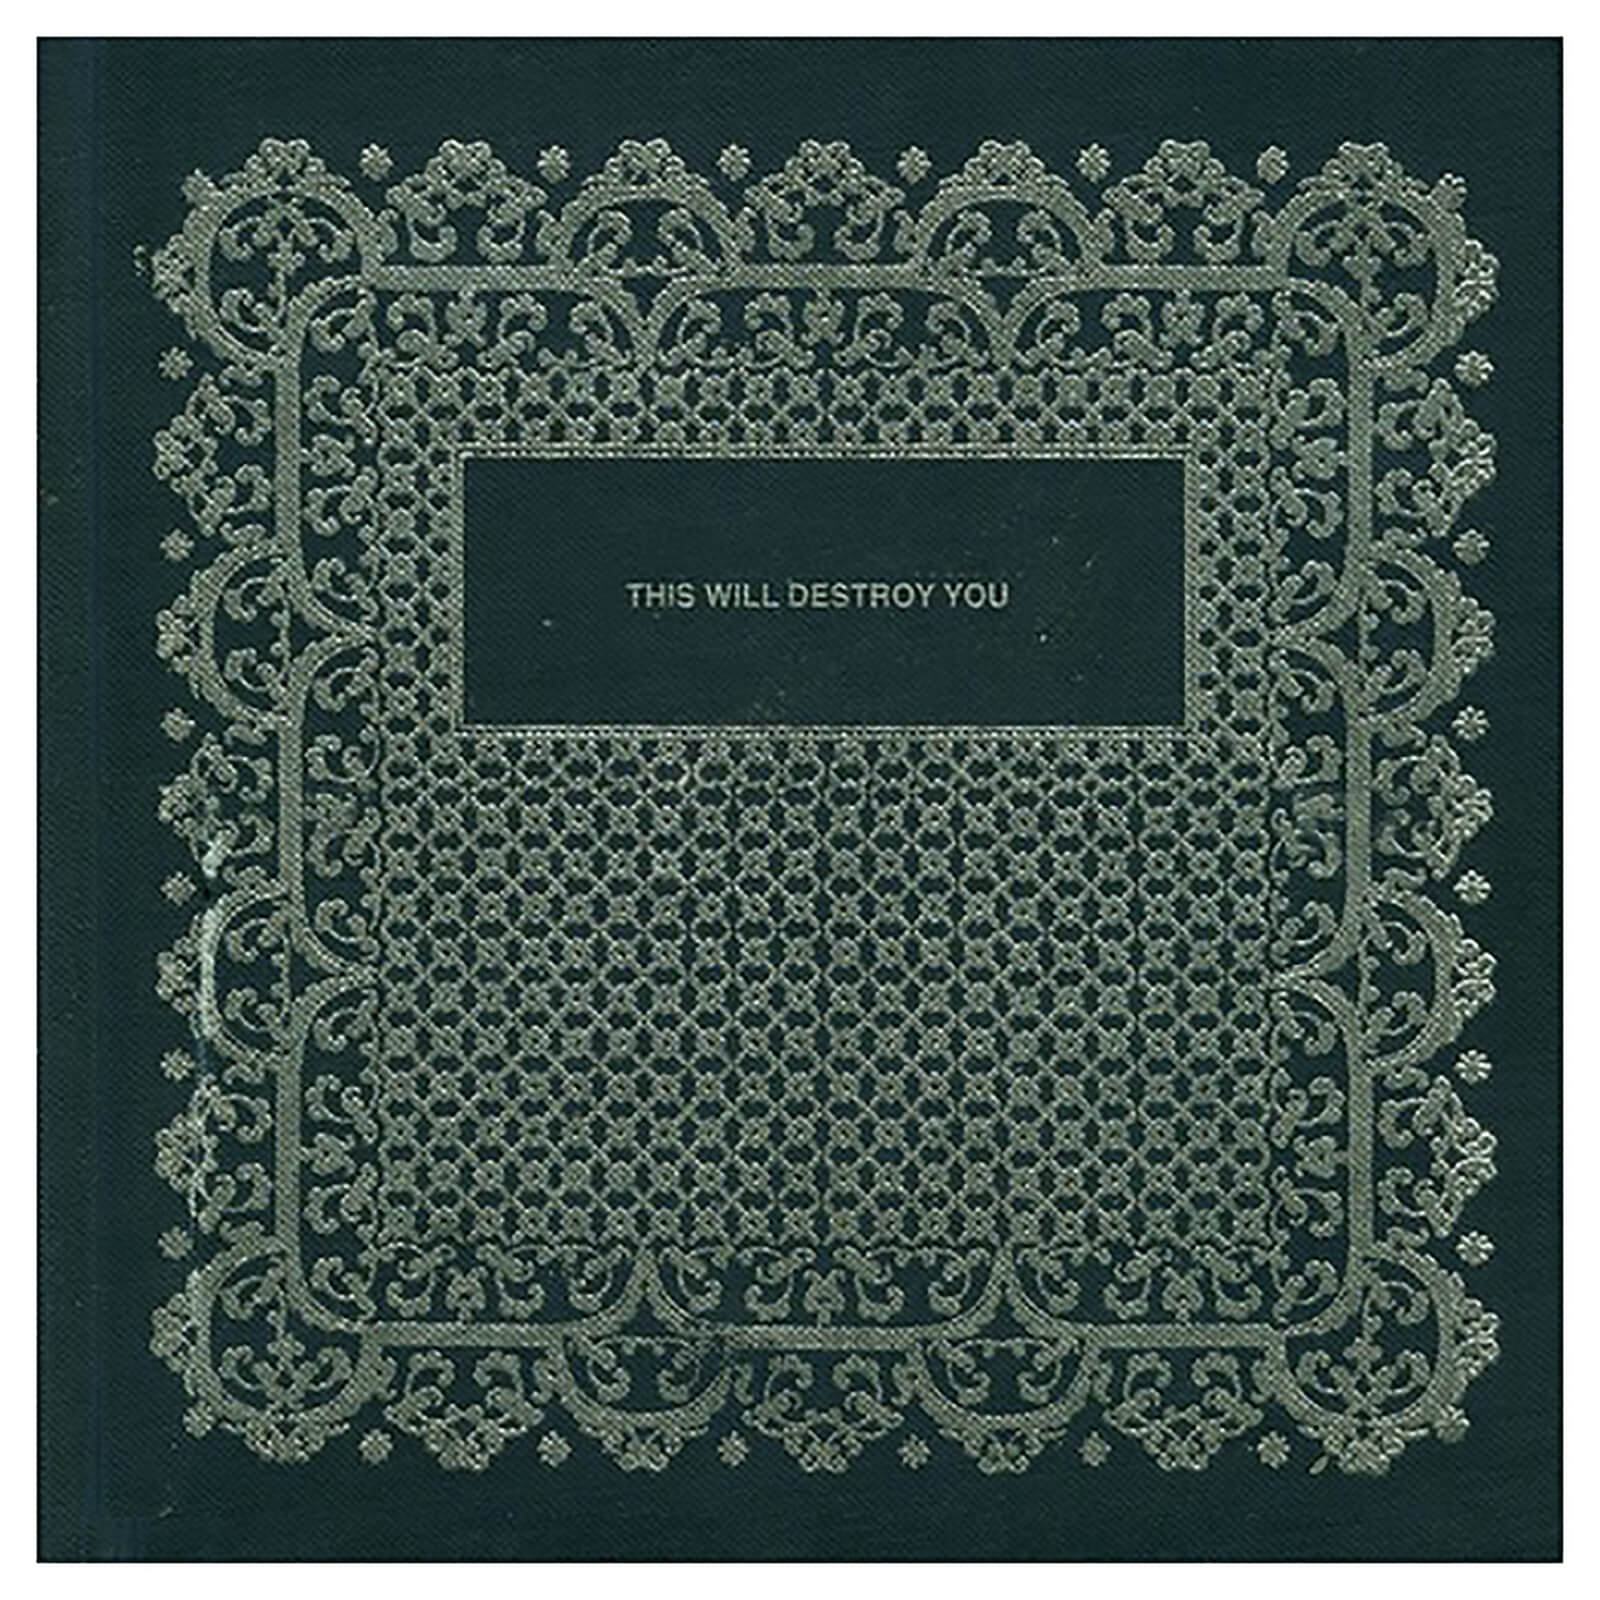 This Will Destroy You - Vinyl